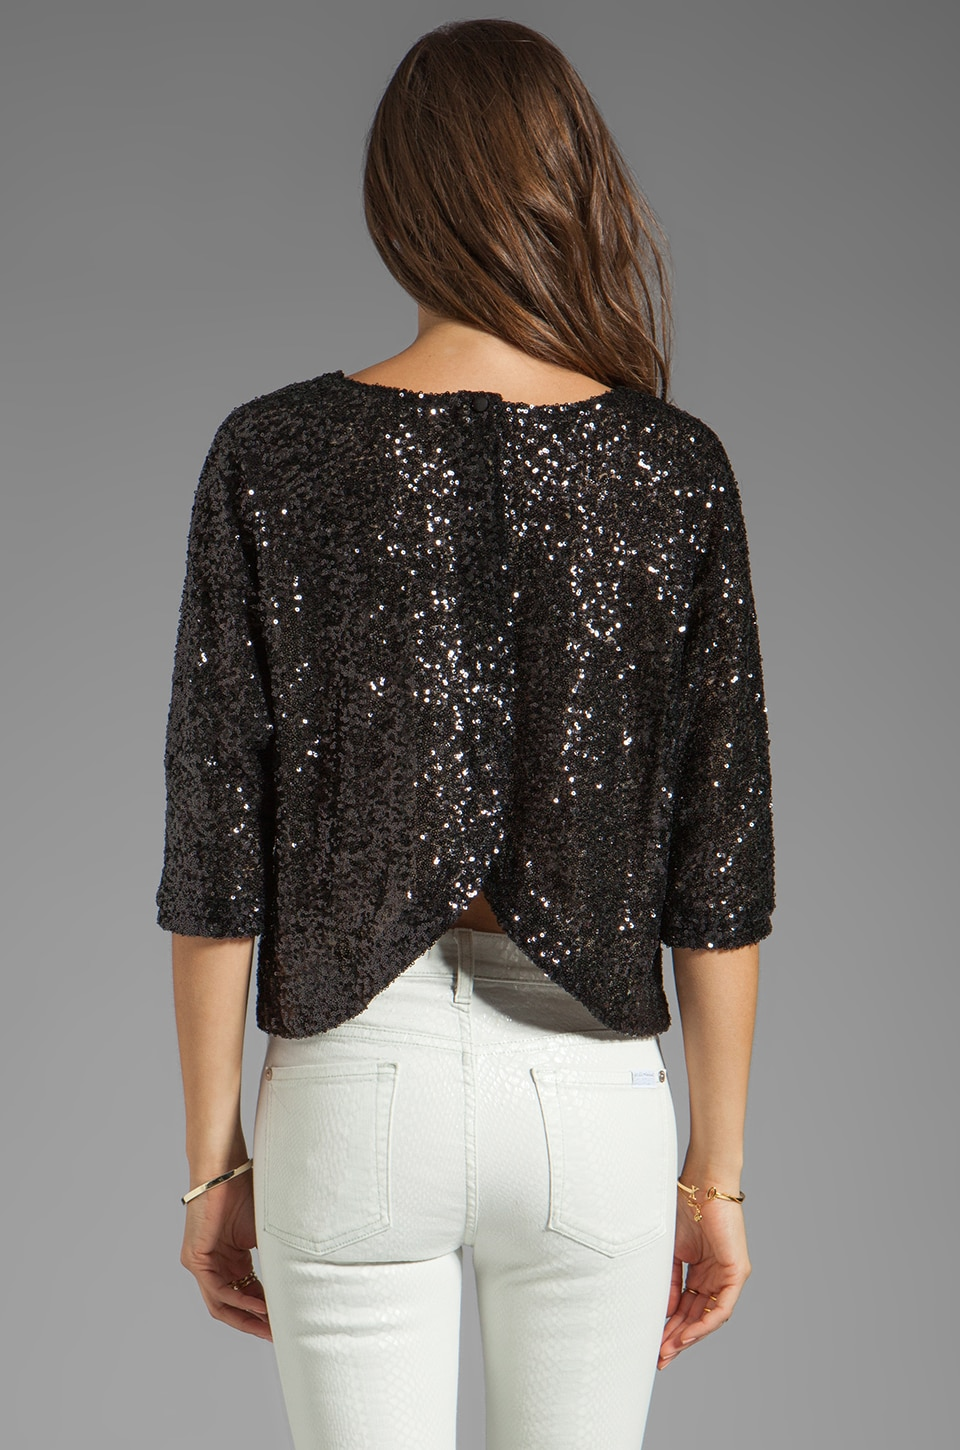 Lovers + Friends Intuition Blouse in Black Sequin